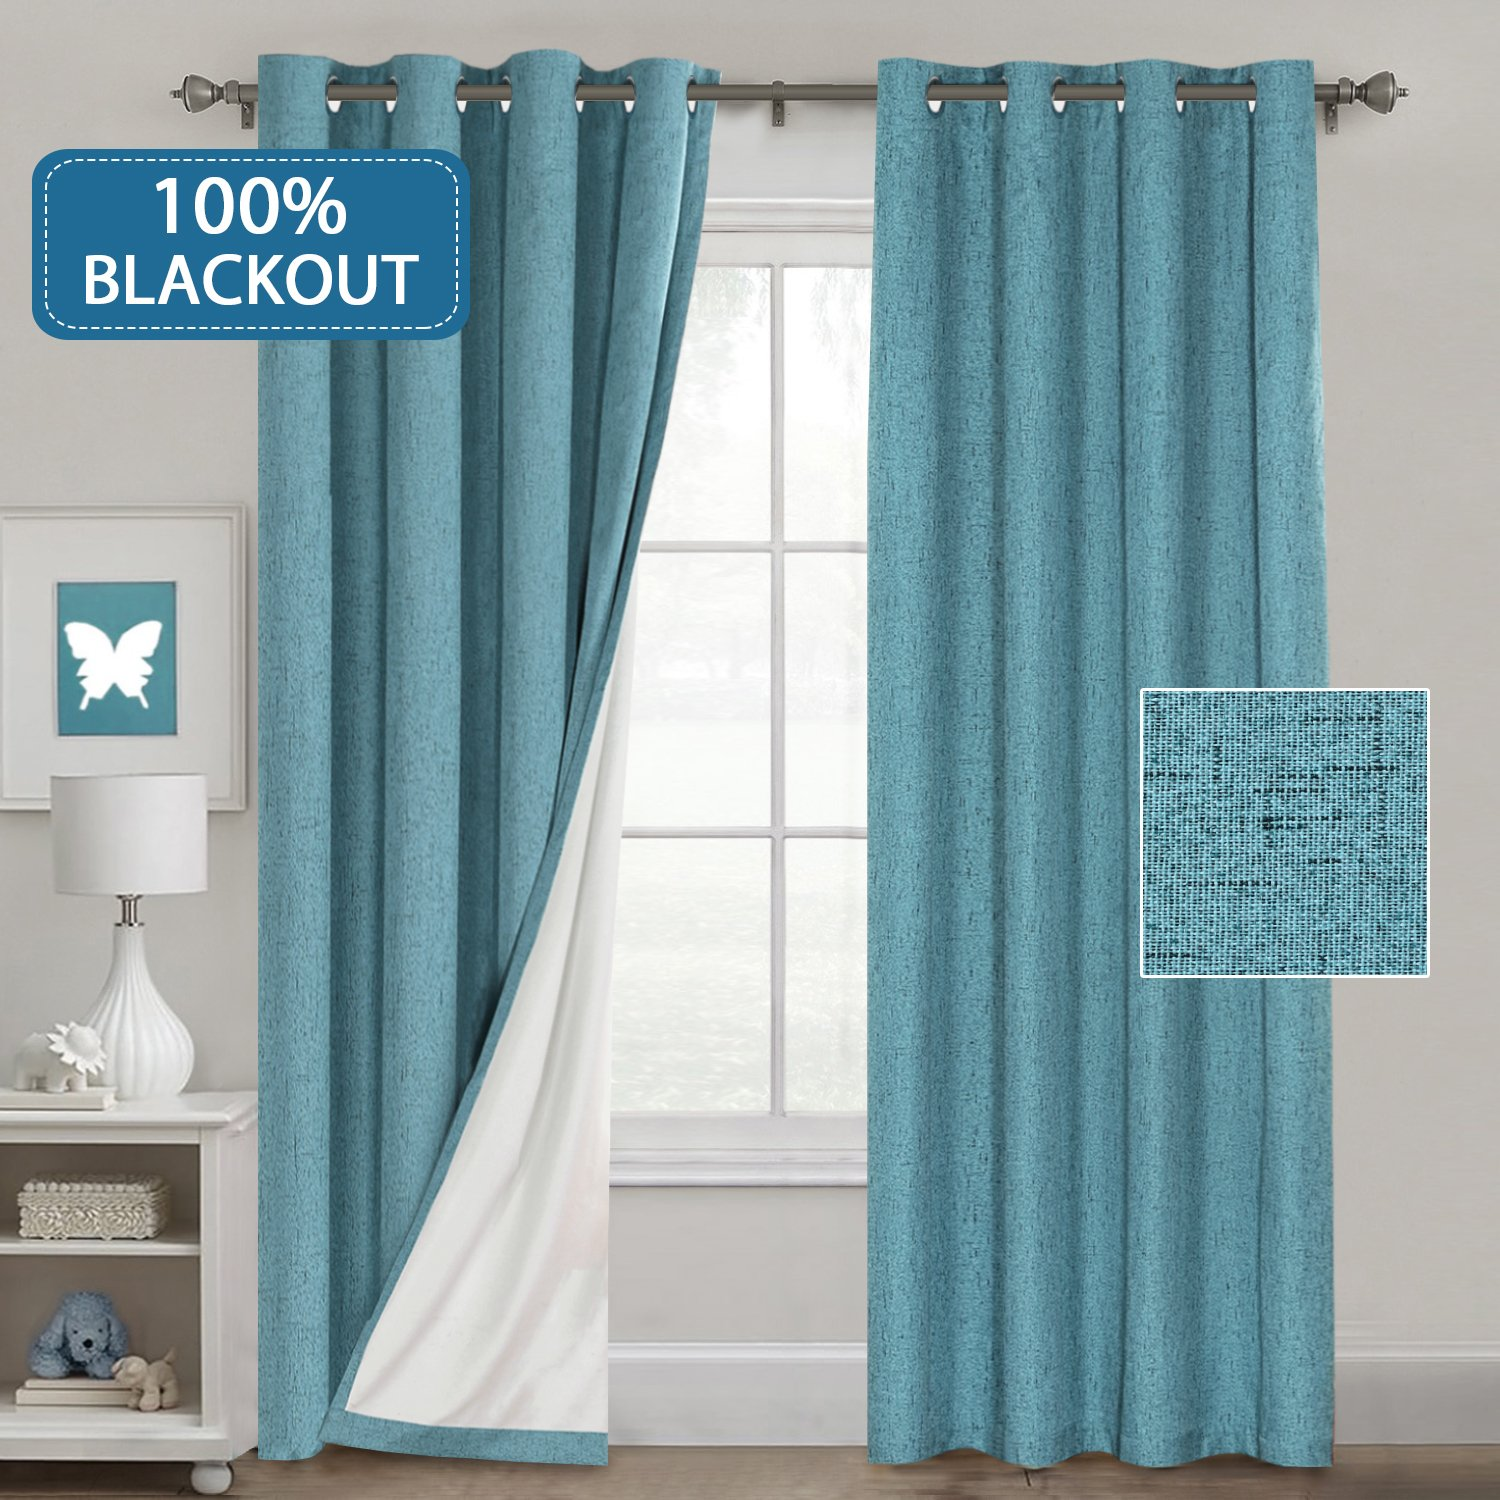 Teal 100% Blackout Linen Textured Curtains for Living Room/Bedroom Thermal  Insulated 100% Blackout Curtains Water Proof Anti Rust Grommet Window ...